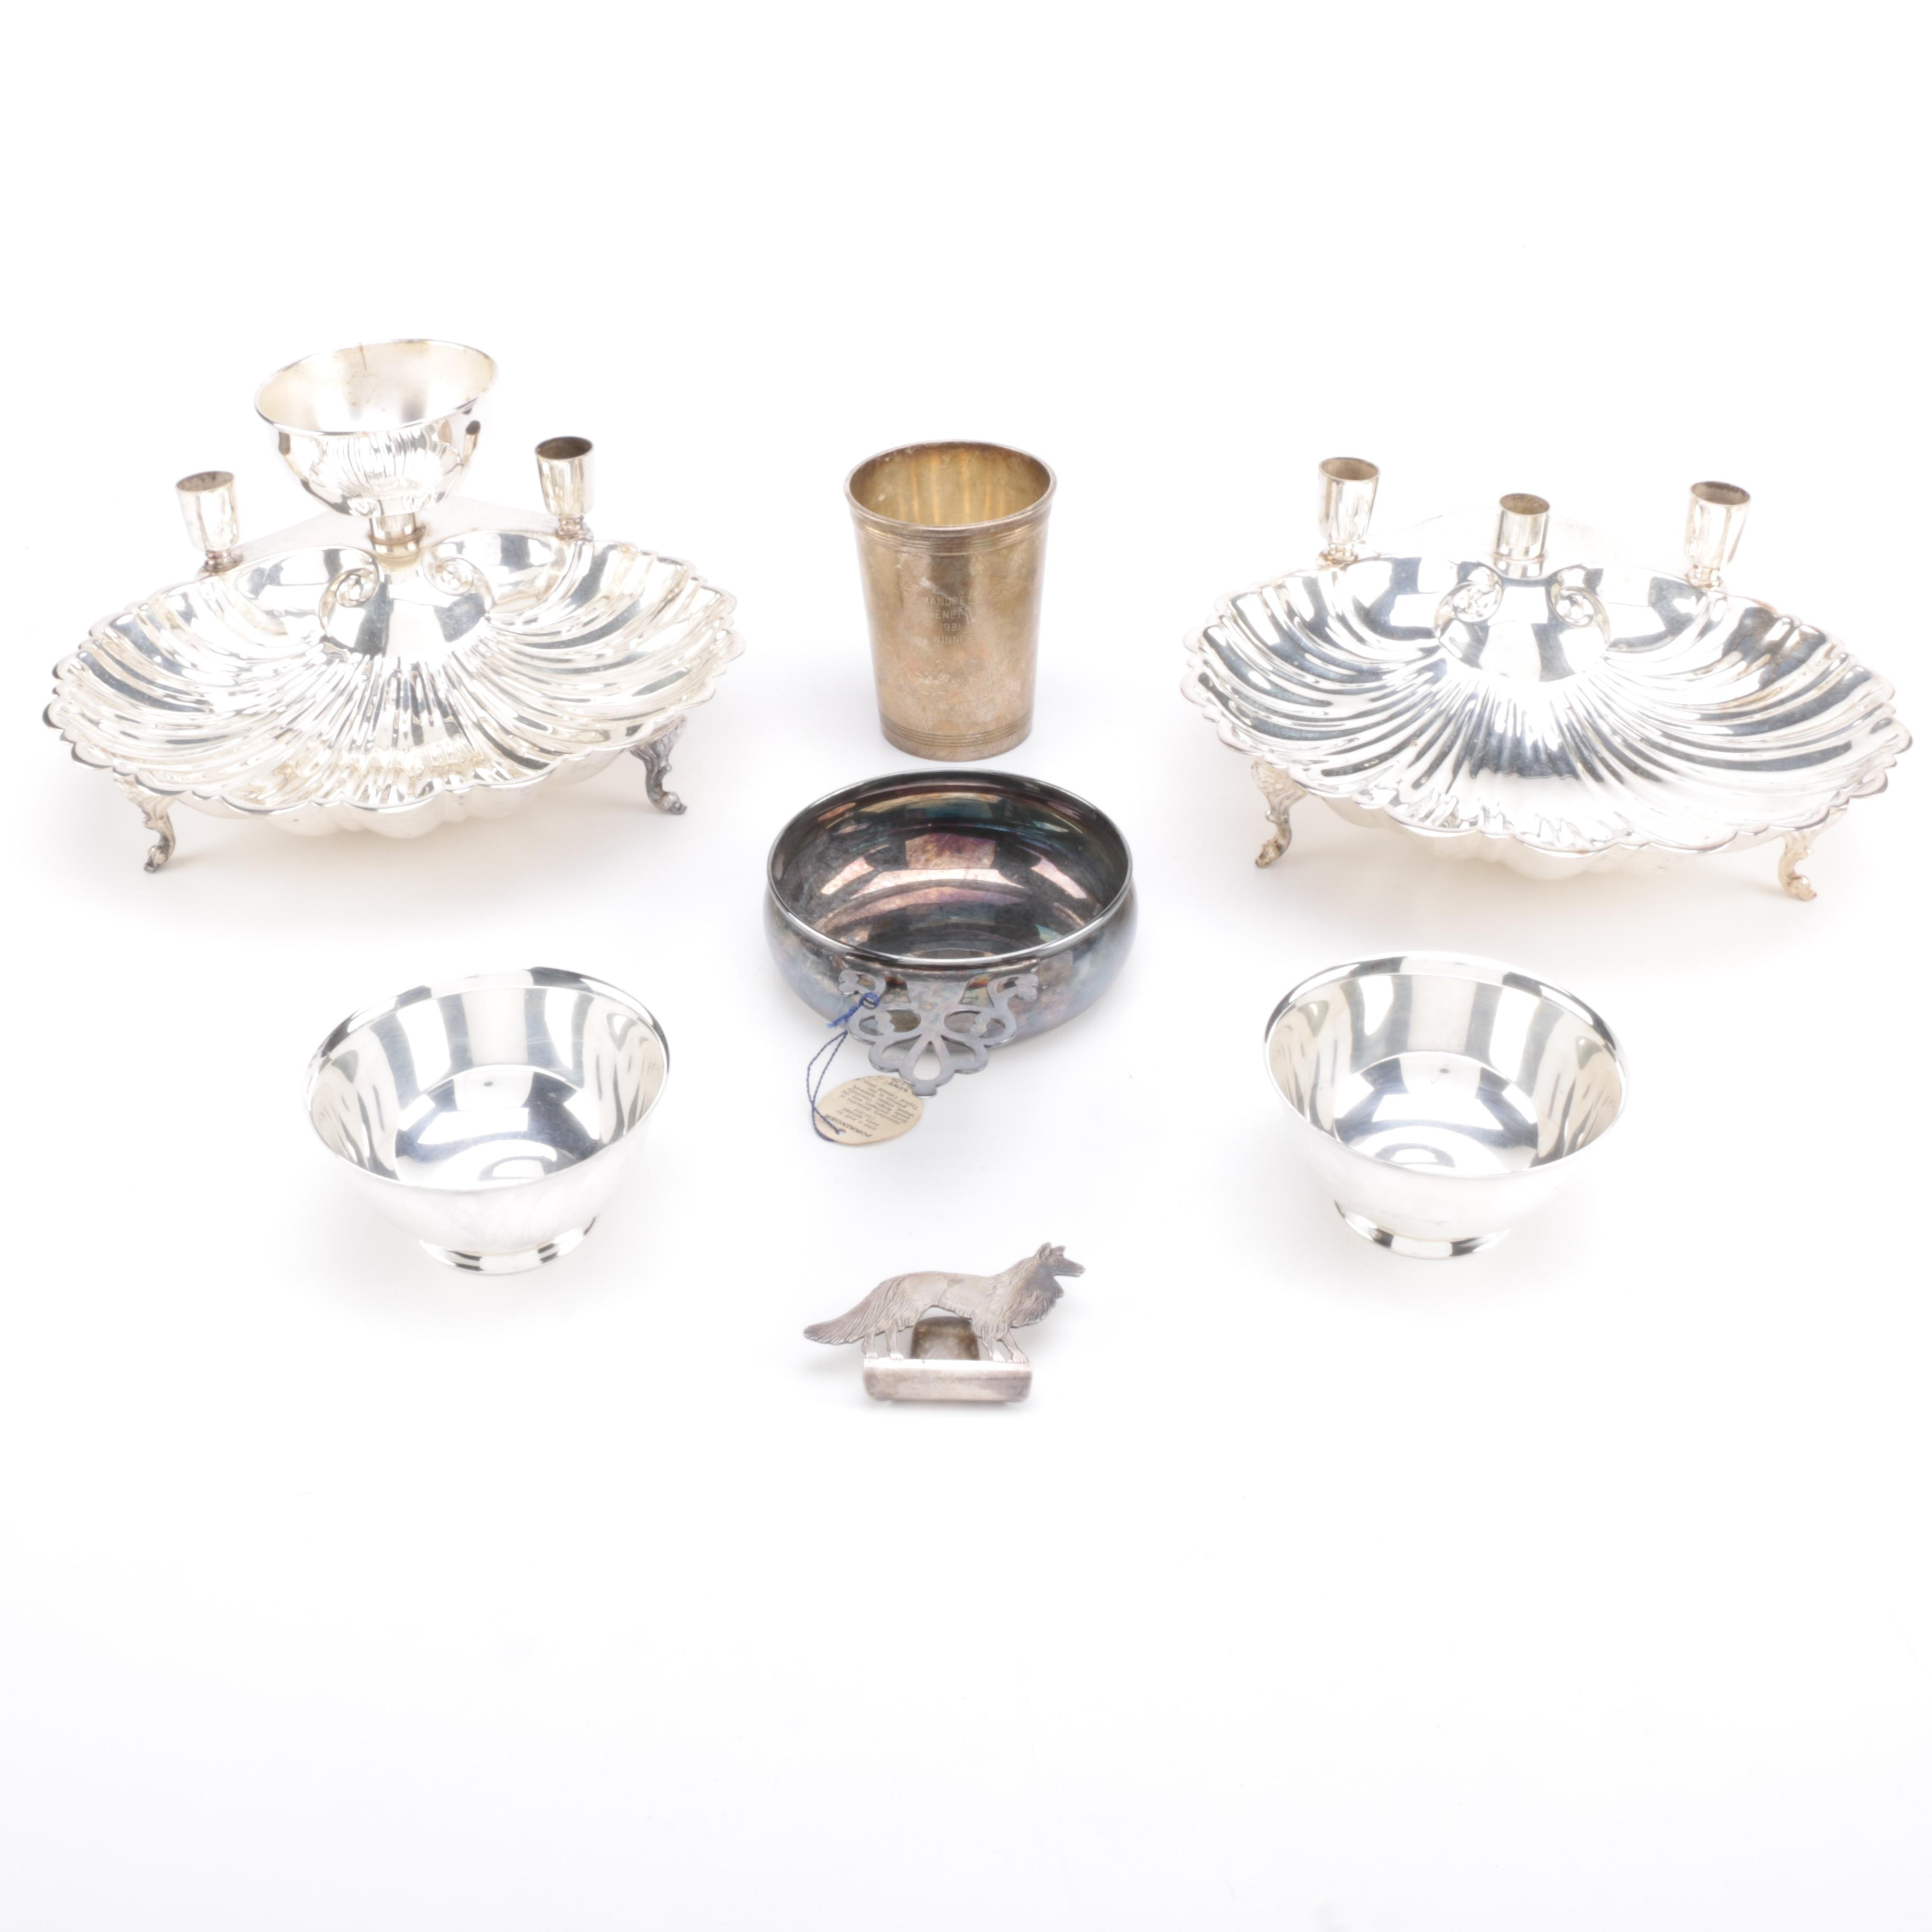 Levesley Brothers Silver Plate Centerpiece and Other Assorted Silver Plate